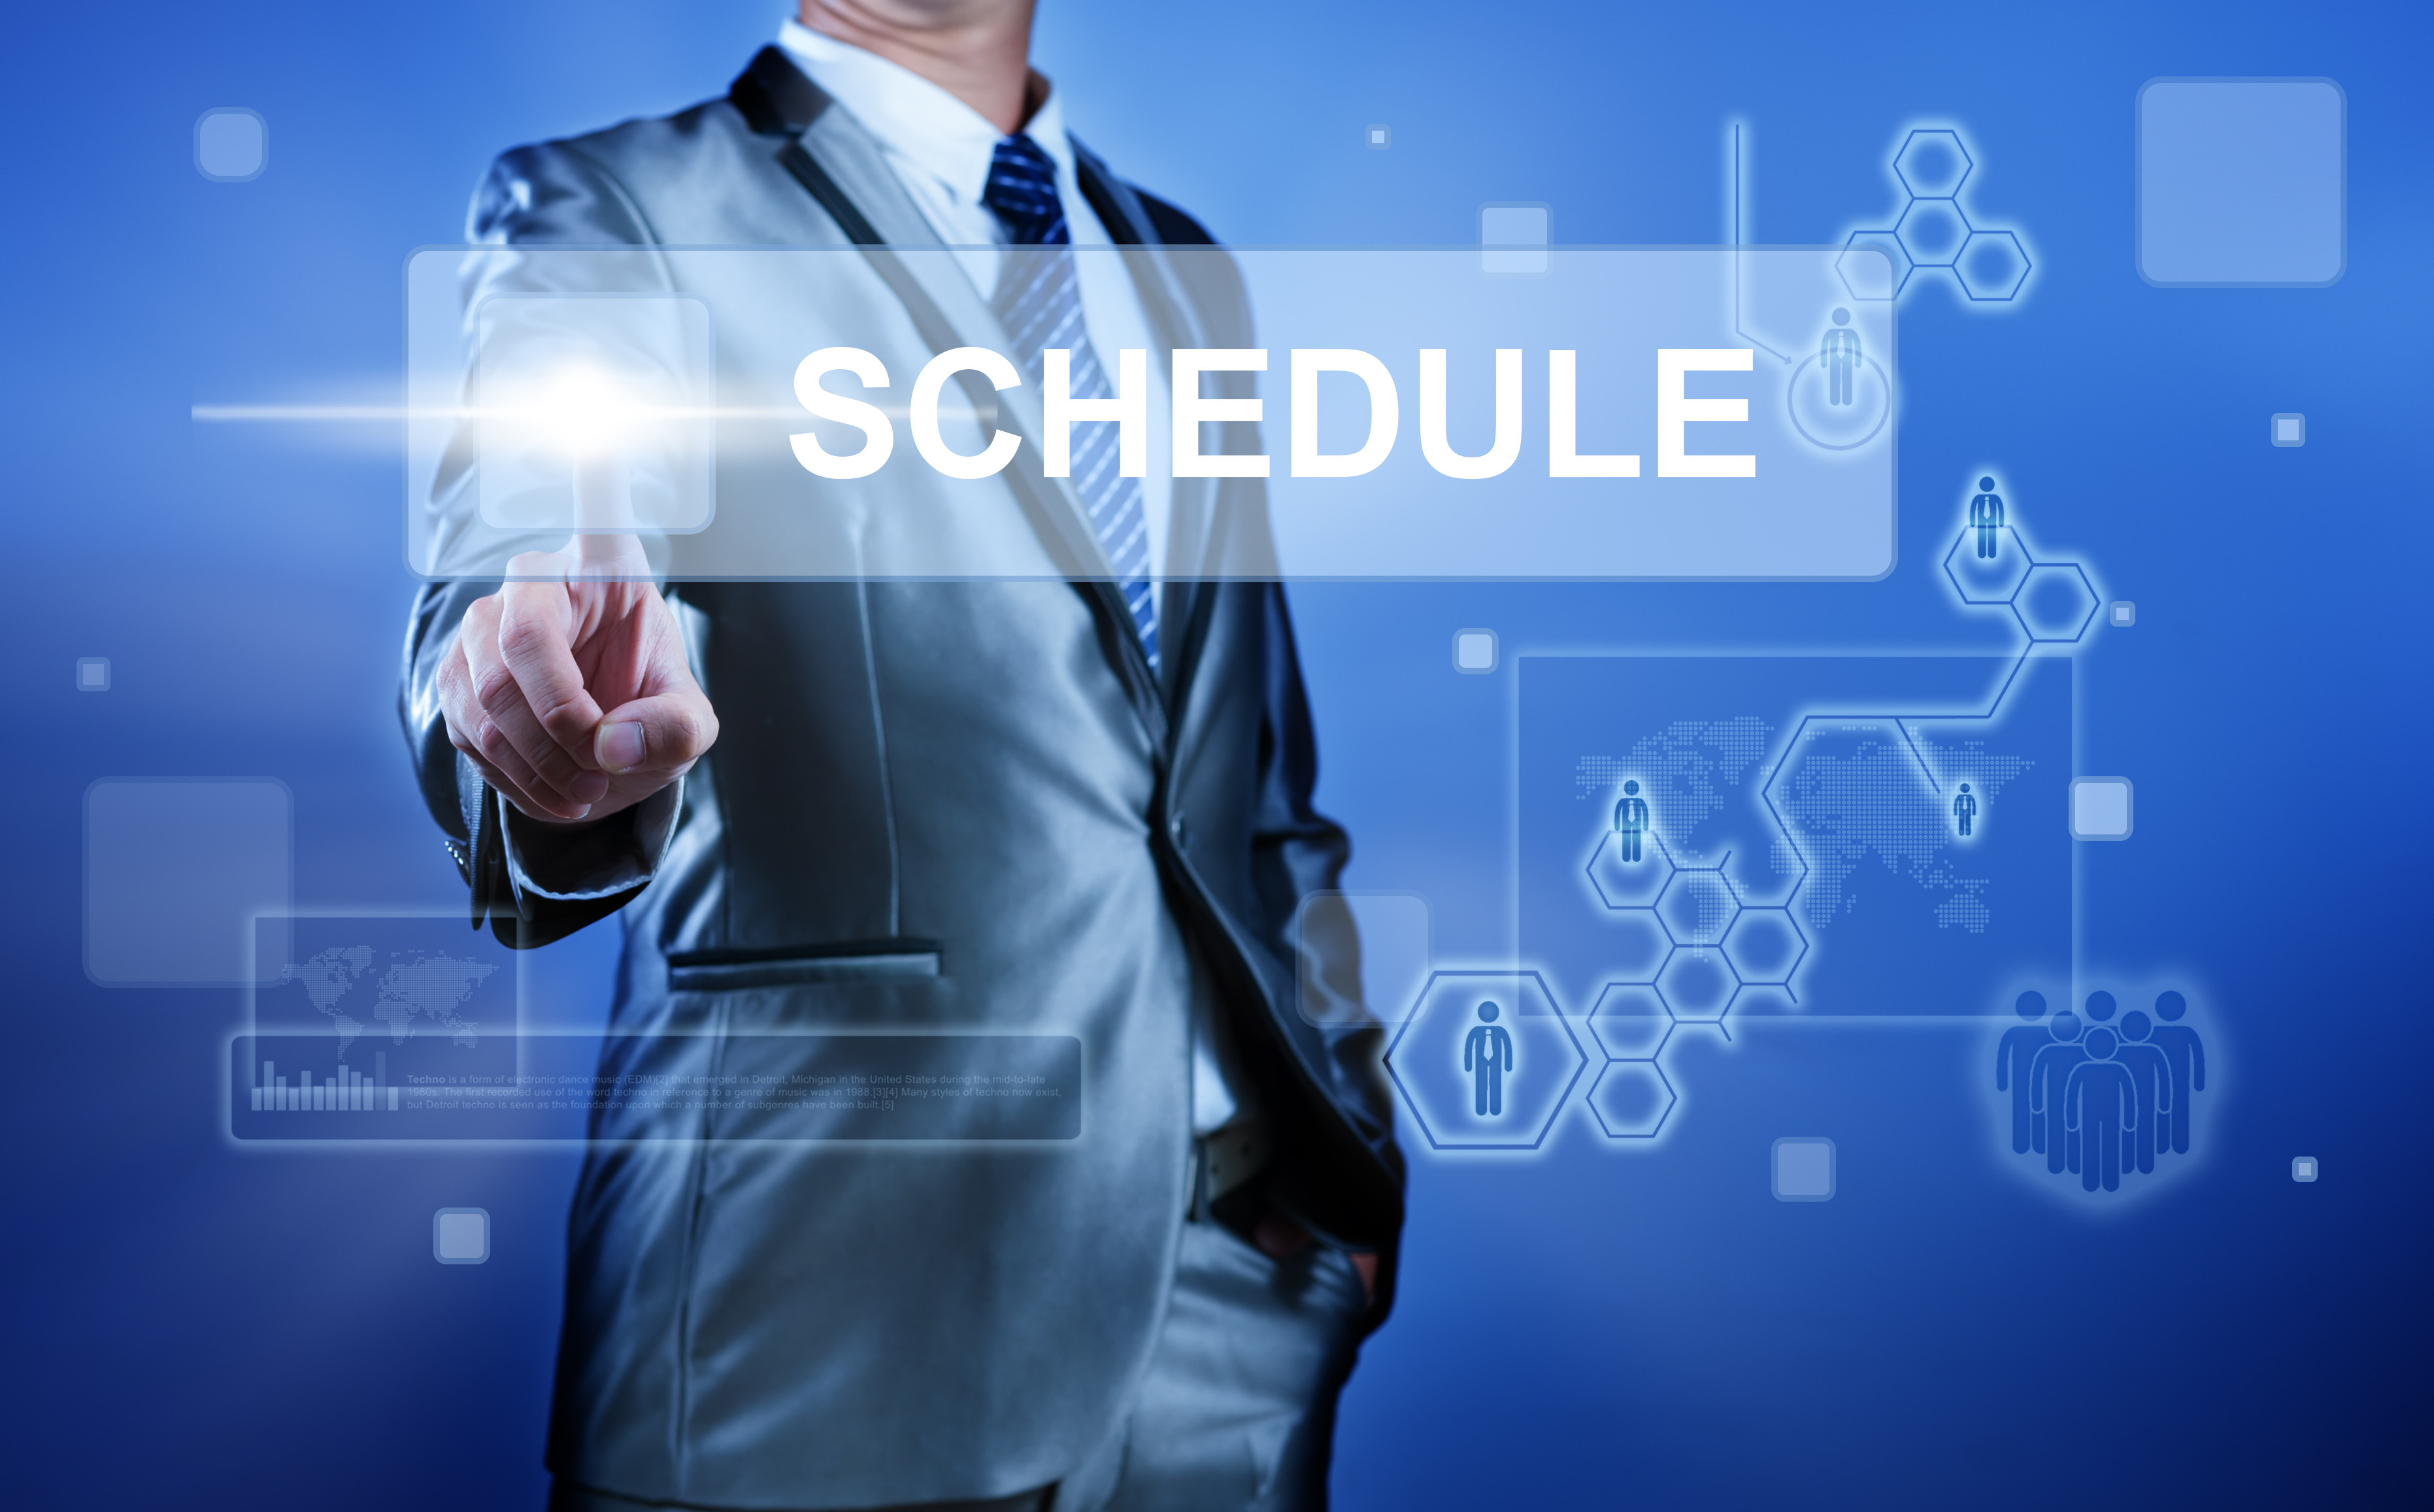 Schedule a conference call